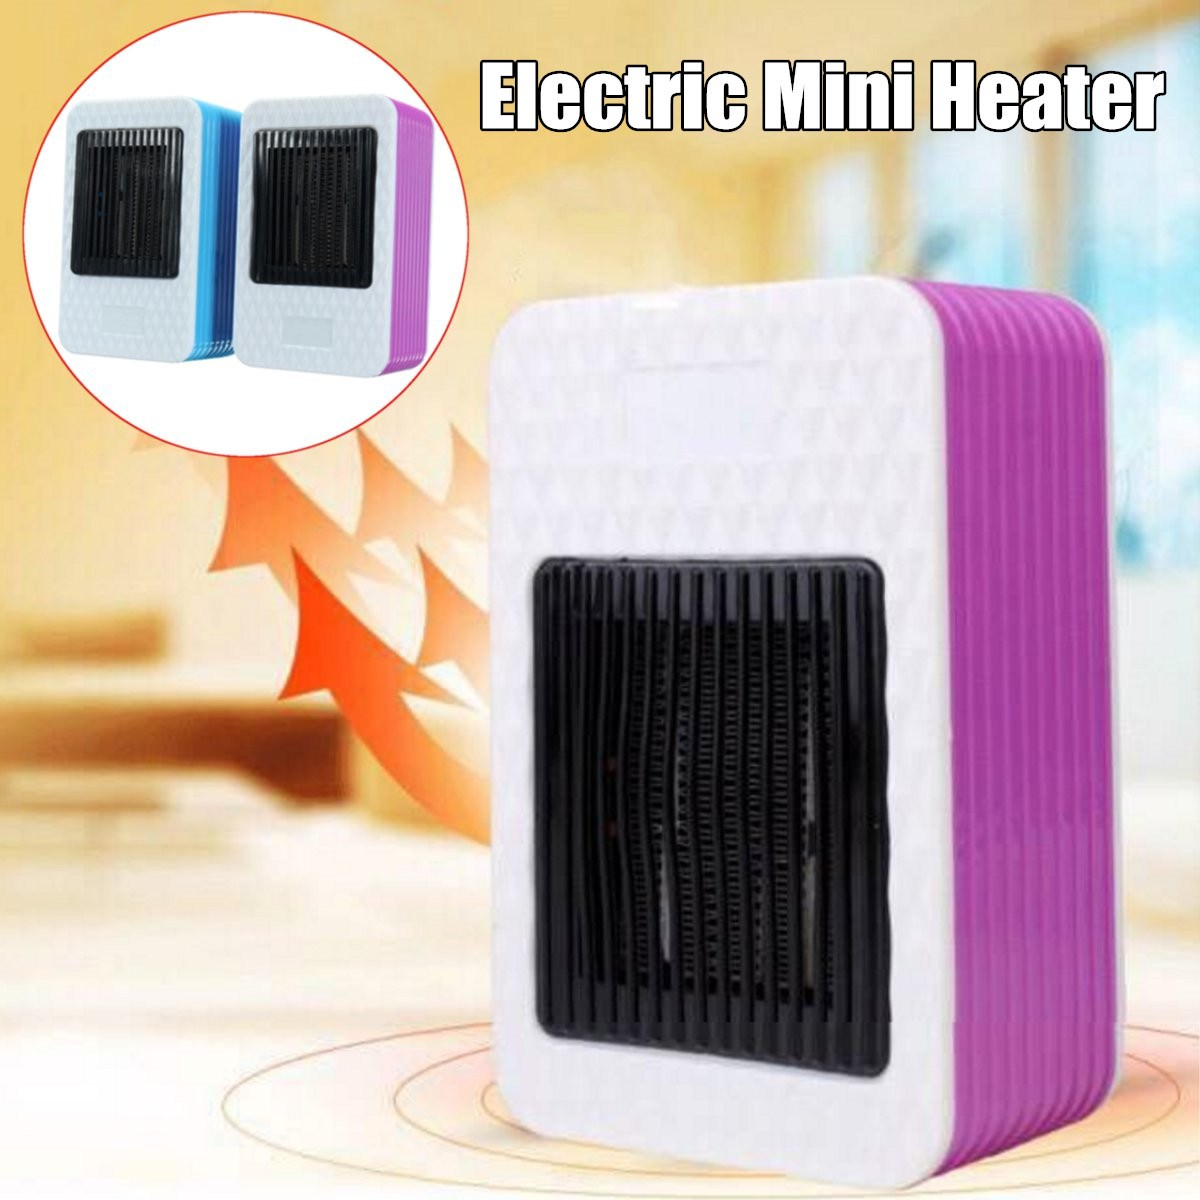 220V AC 500W Mini Electric Air Heater Powerful Warm Blower Portable Fast Heater Fan Stove Radiator Room Warmer 220v 3 gear mini electric warm air blower electric air heater room fan heater cold and warm dual purpose overheat protection